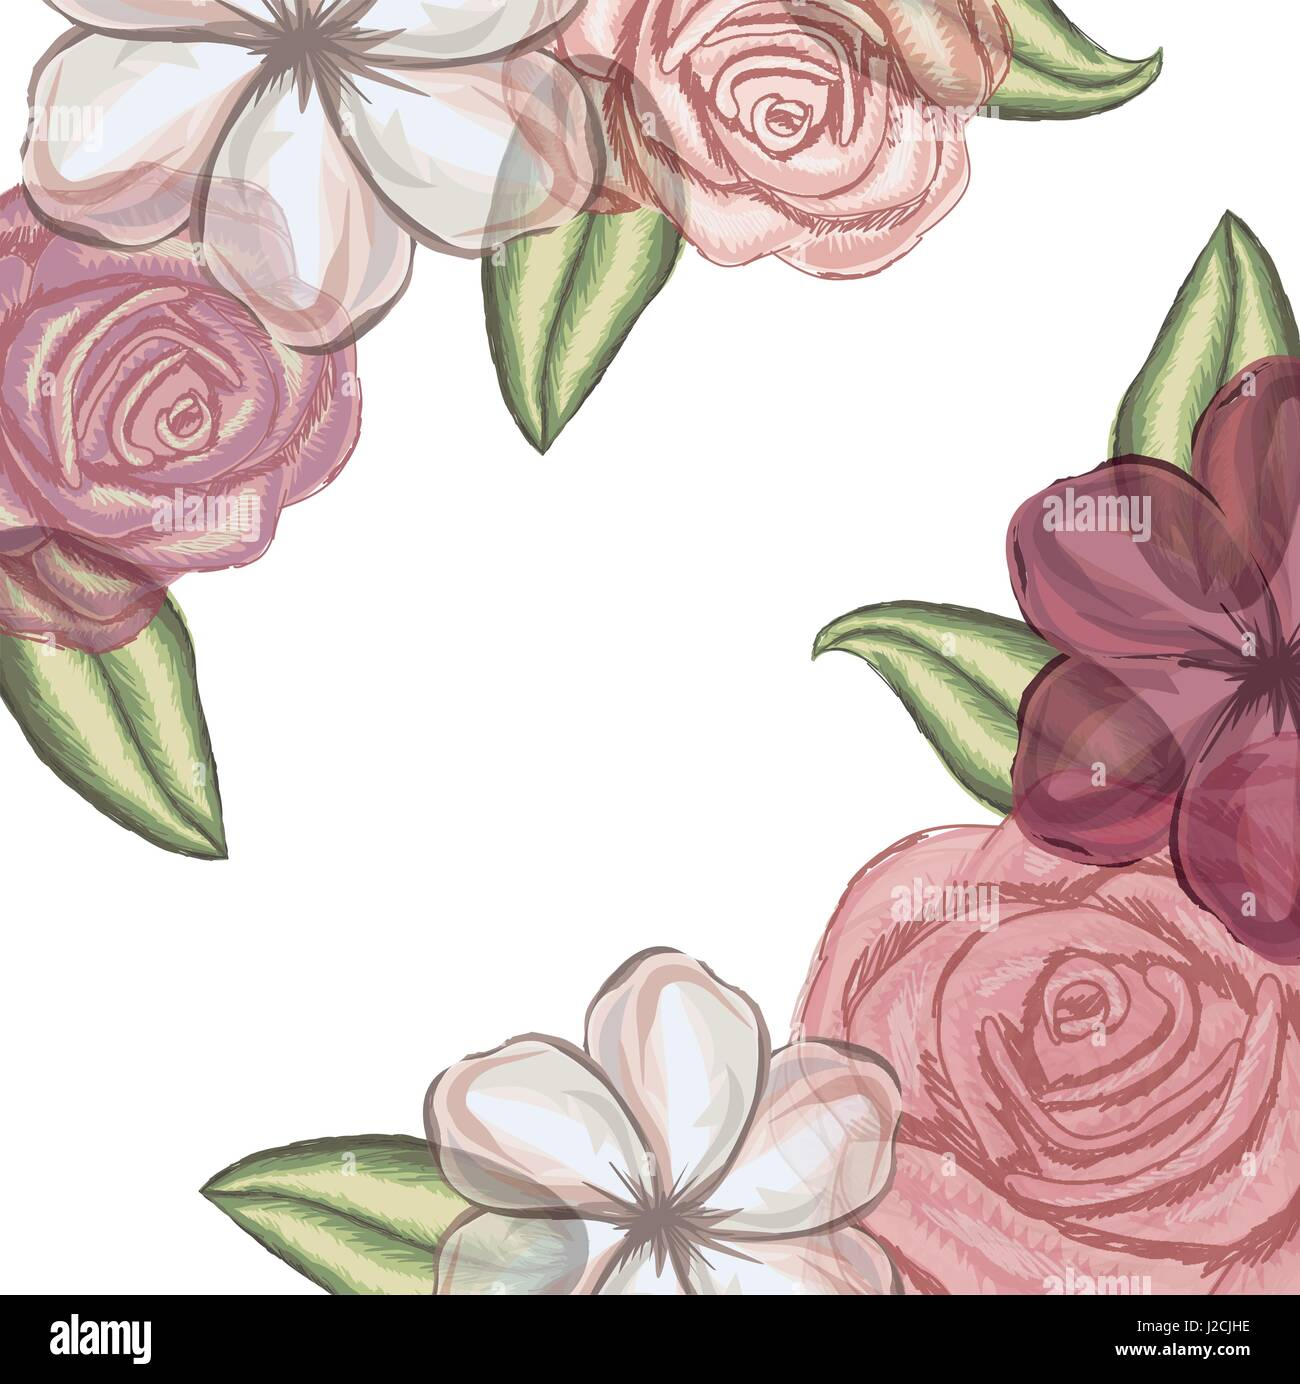 colorful floral background with flowers in transparency - Stock Image